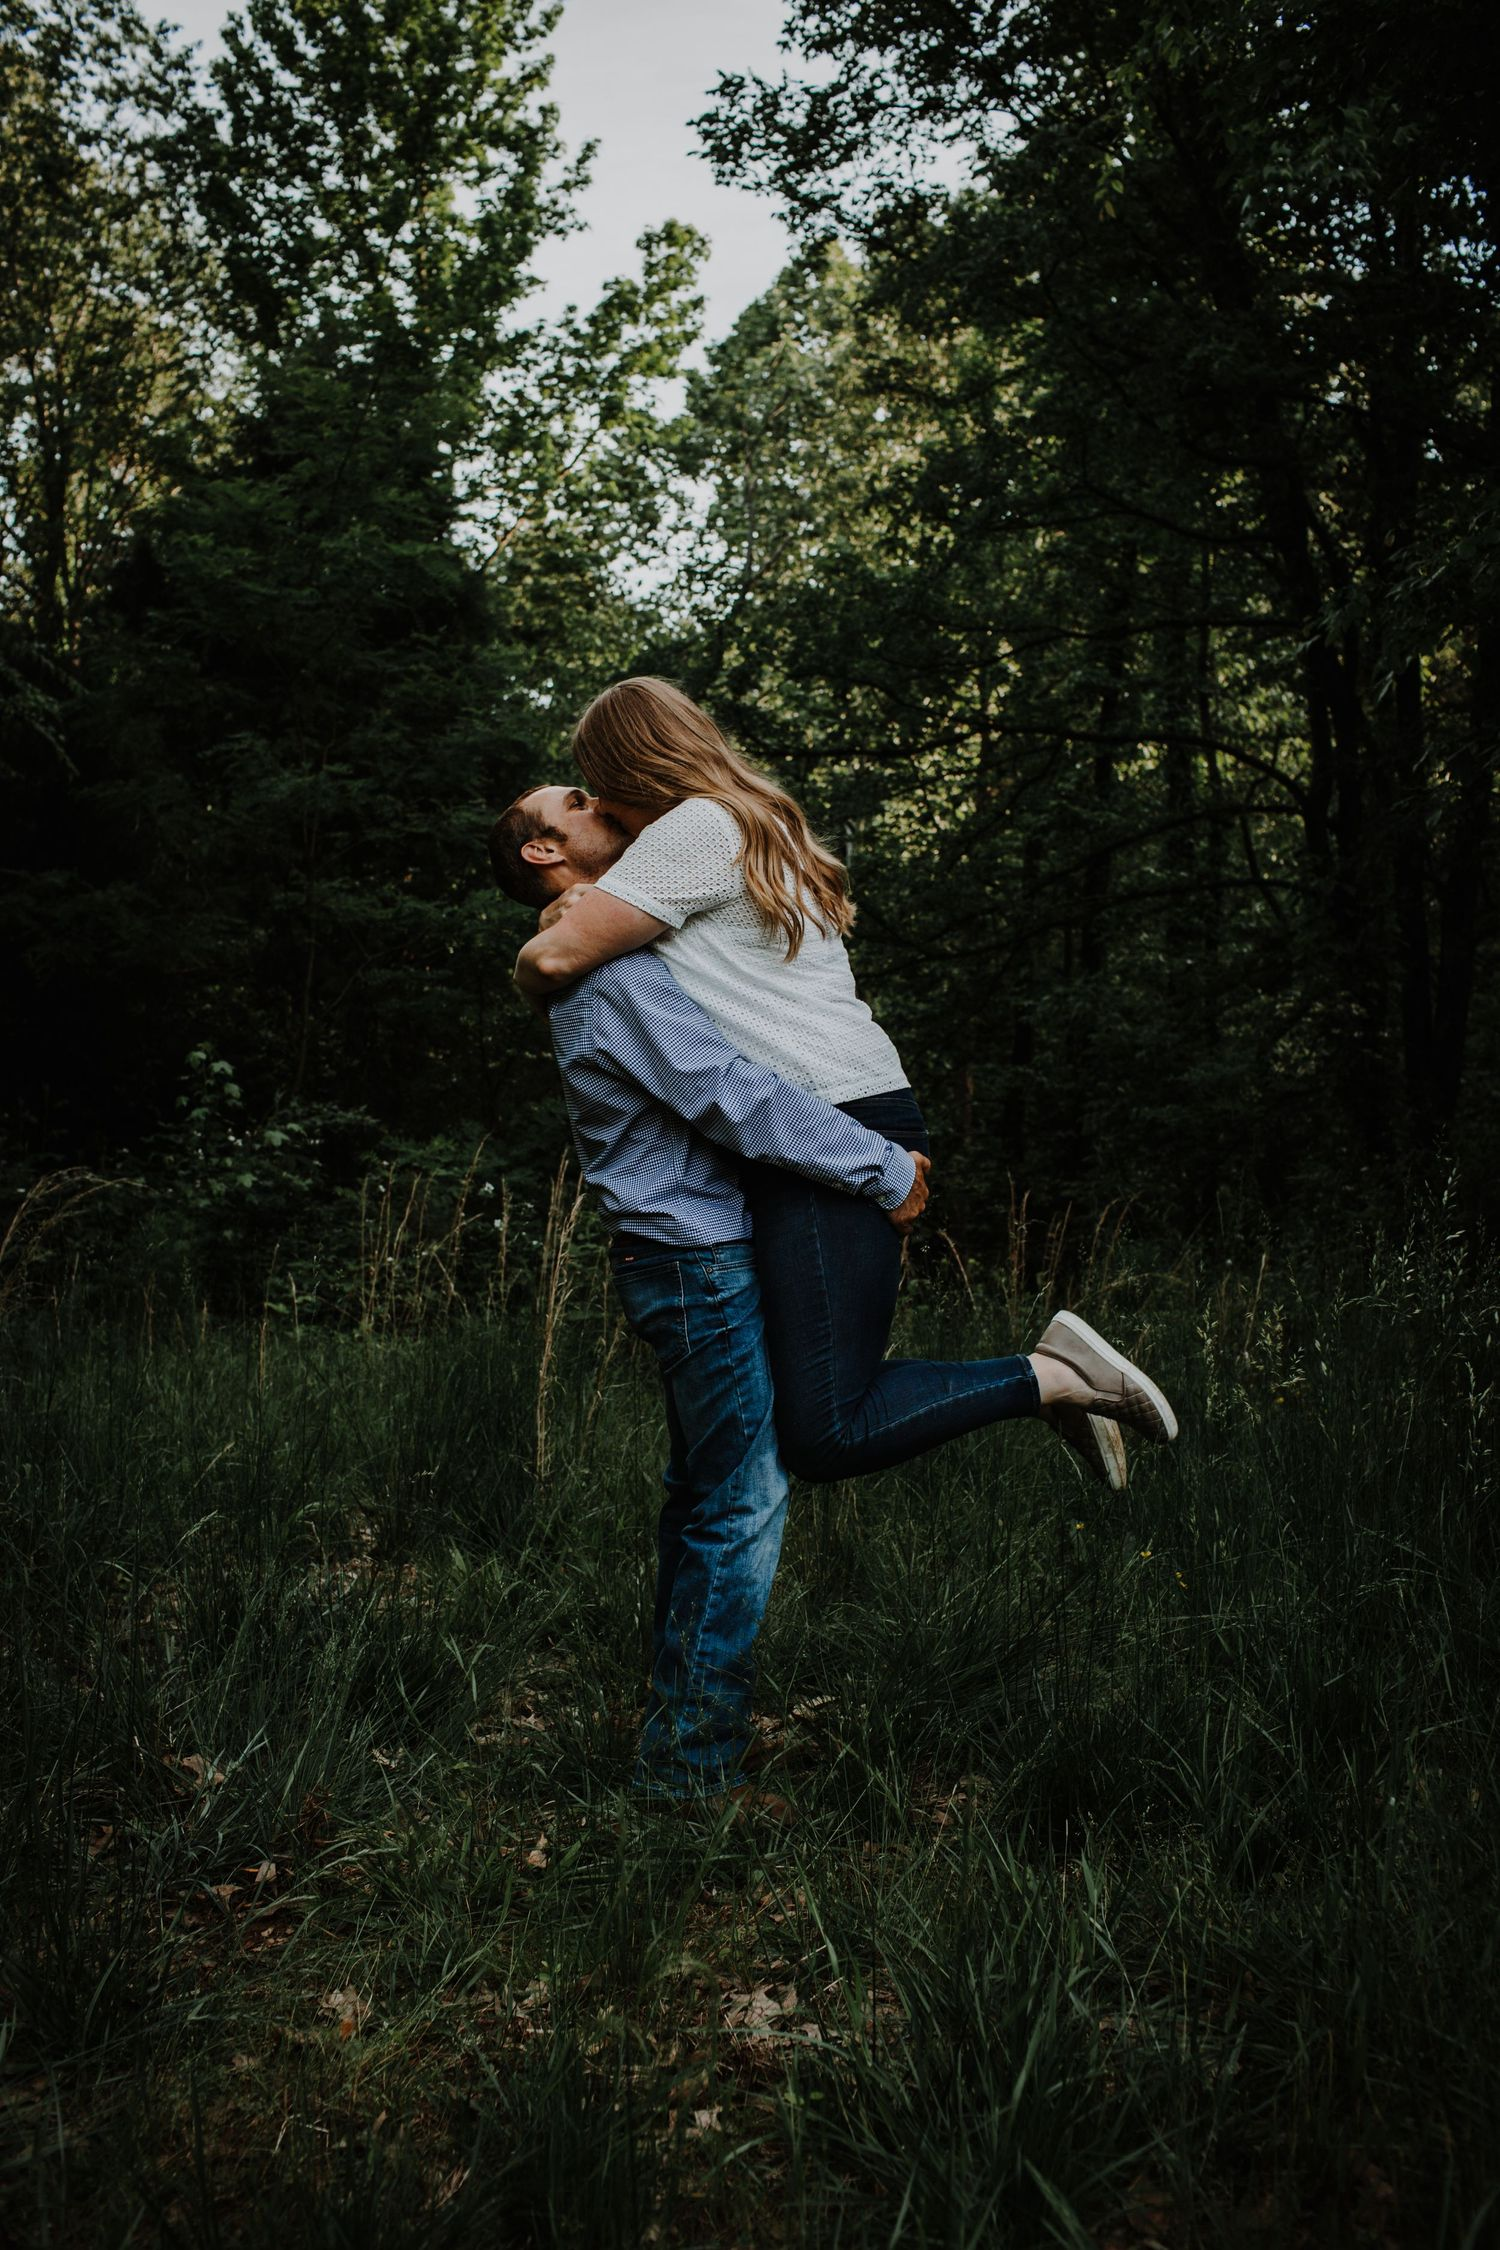 Moody wedding photography Lexington central KY Kentucky country engagement session couples near me local photographer